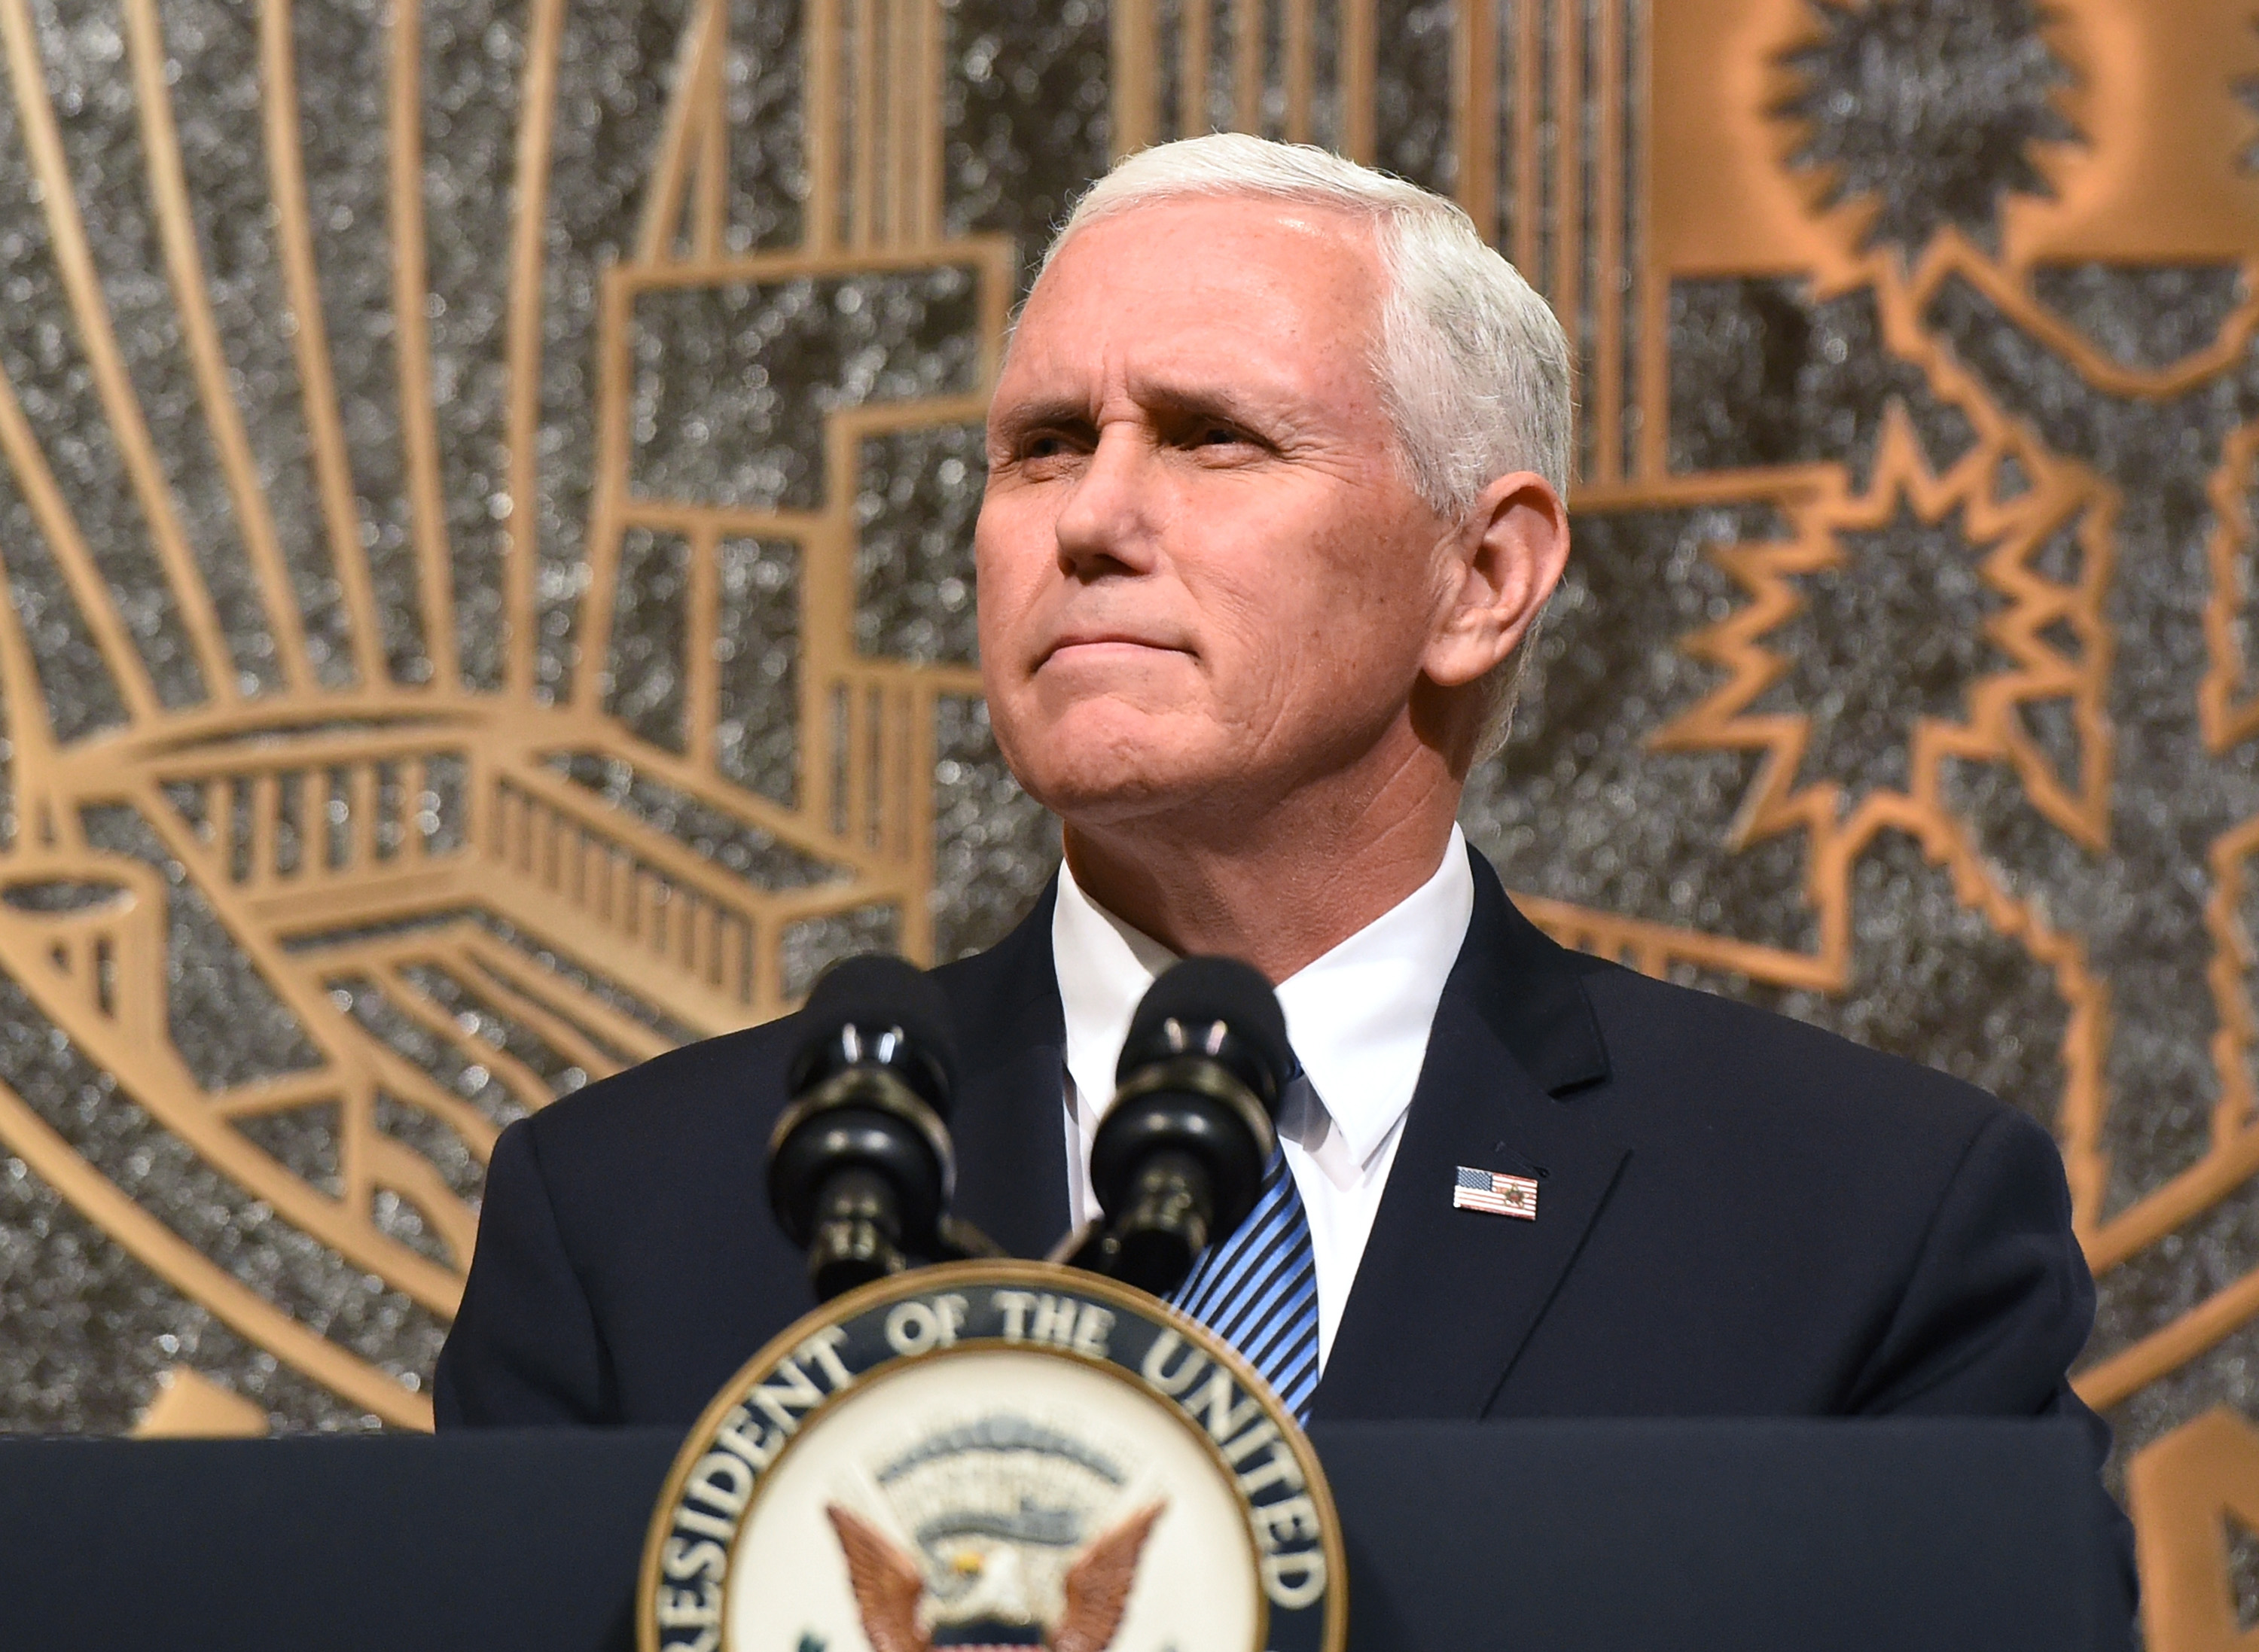 Vice President Mike Pence leaves National Football League  game because of players who protested